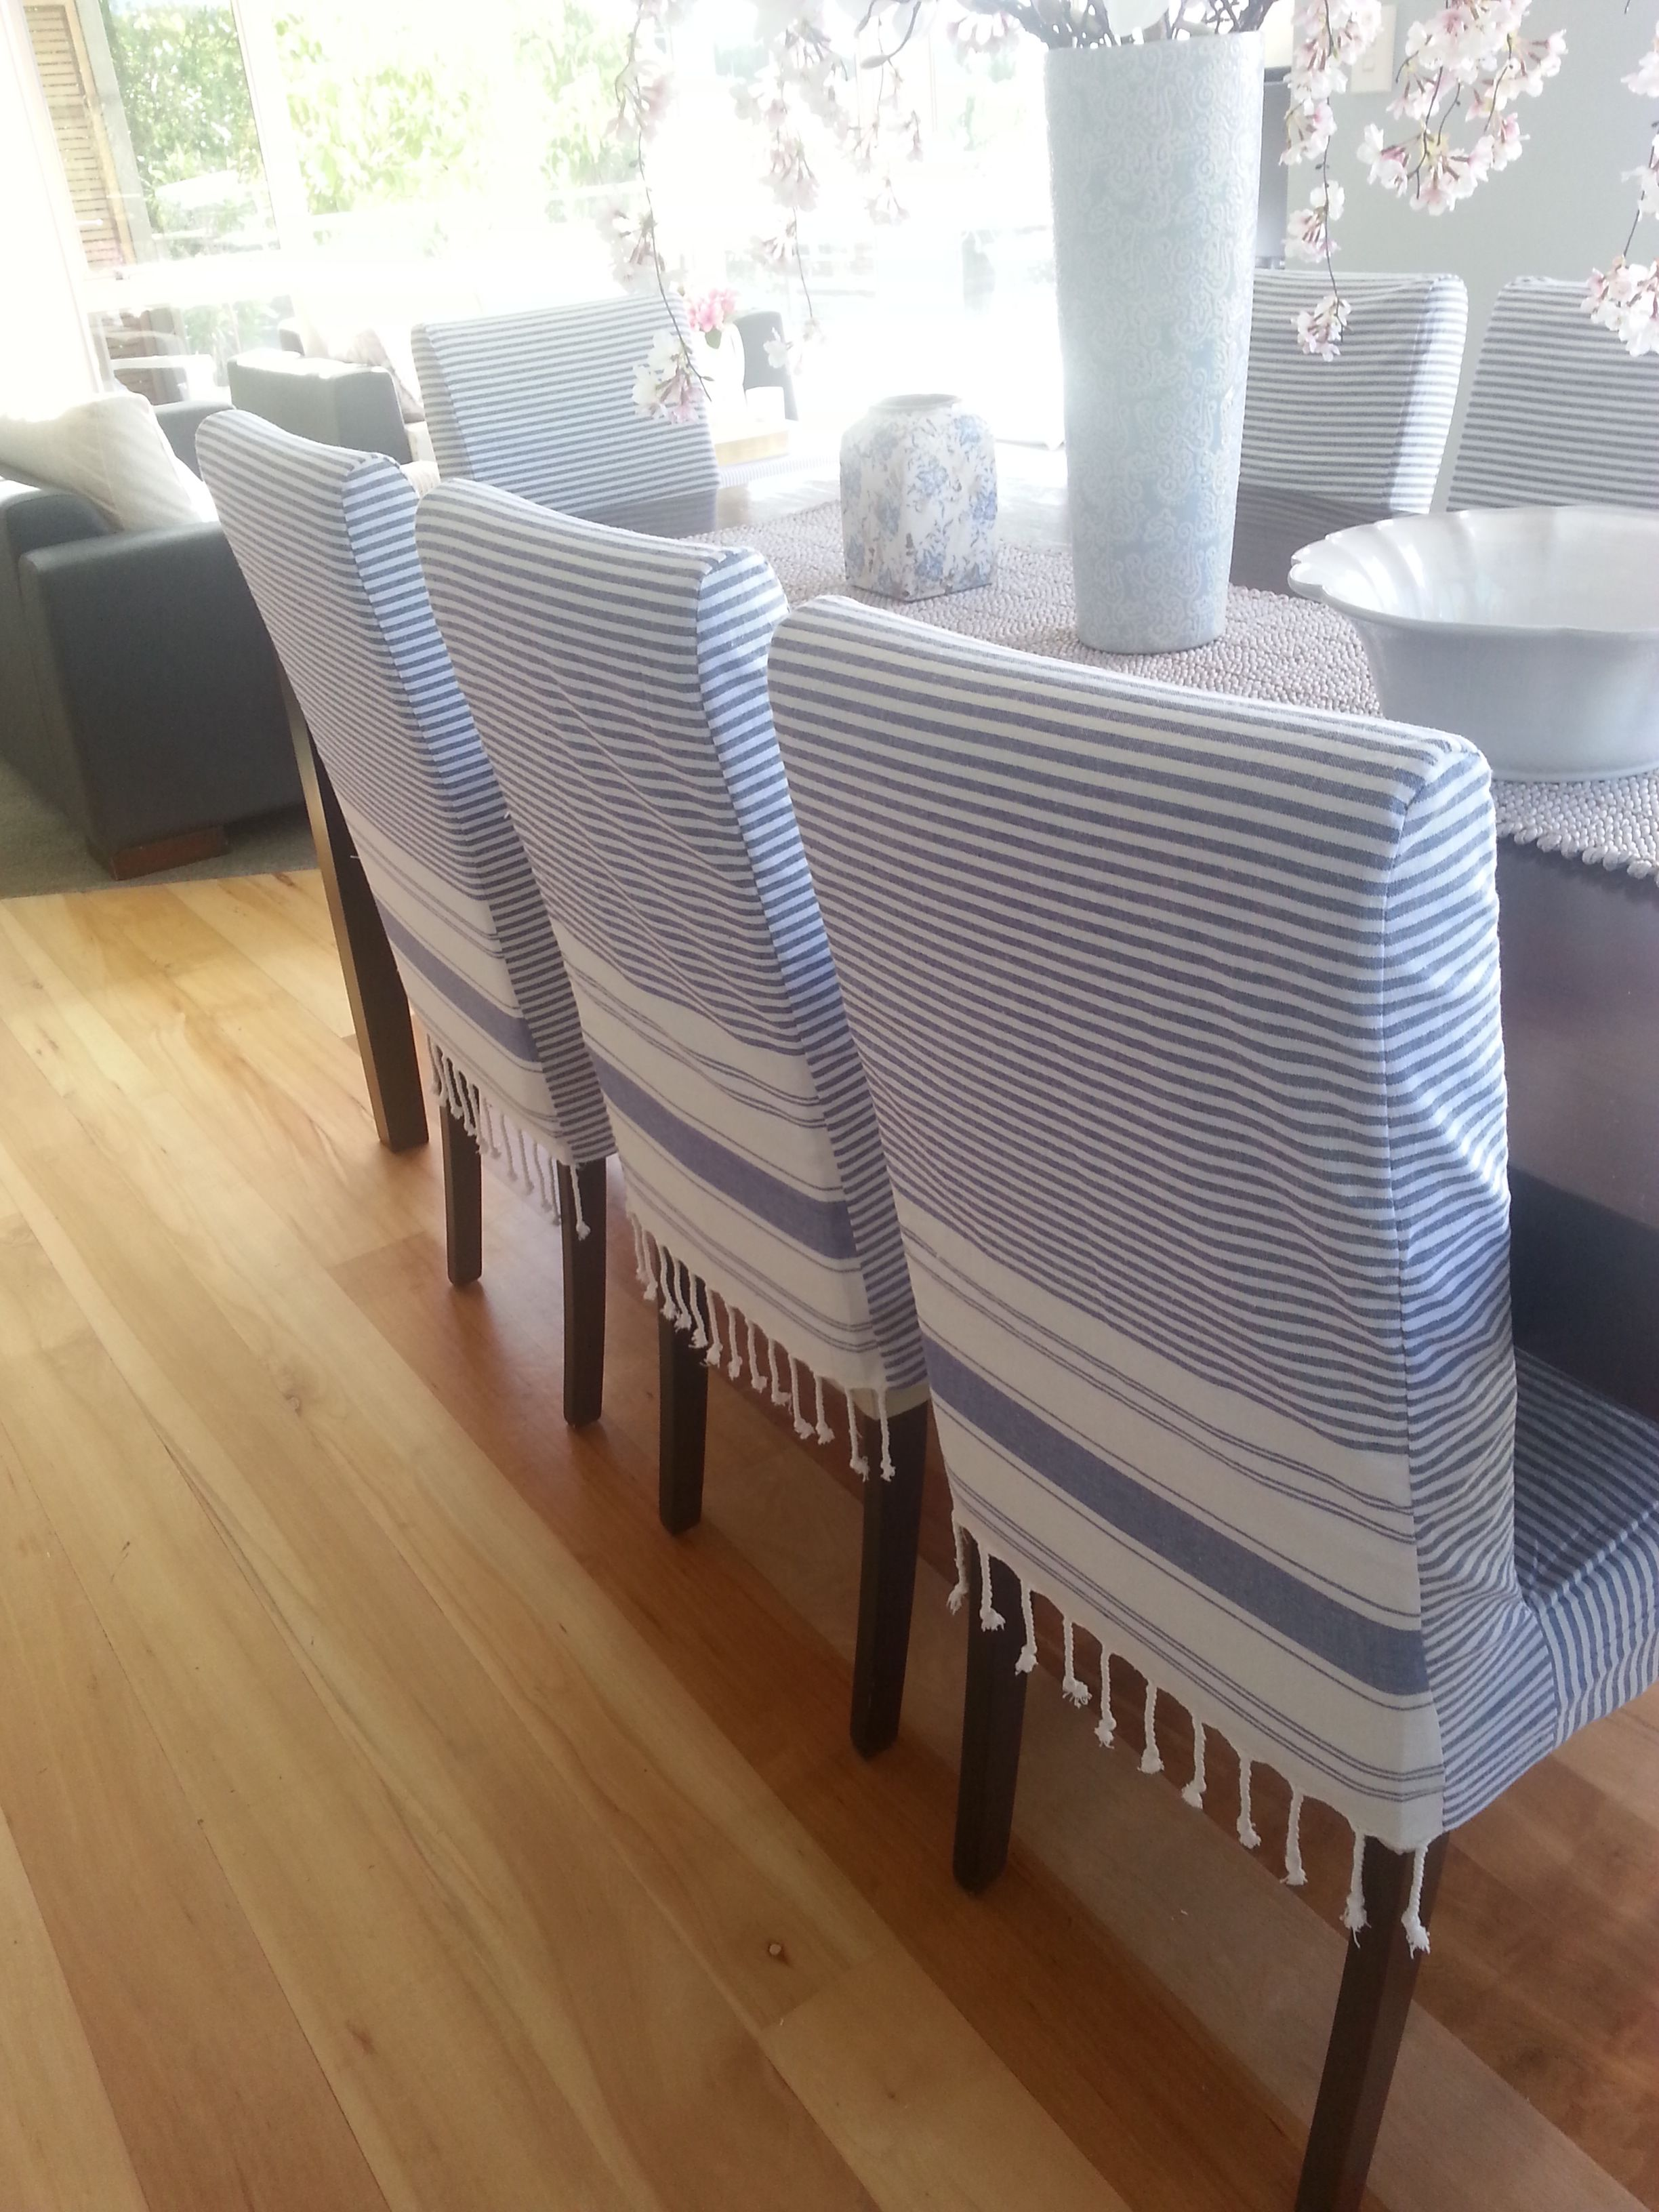 white slip covers for dining room chairs work smart office chair blue and may be made from turkish peshtemal towel pestemal dii fanta hammam